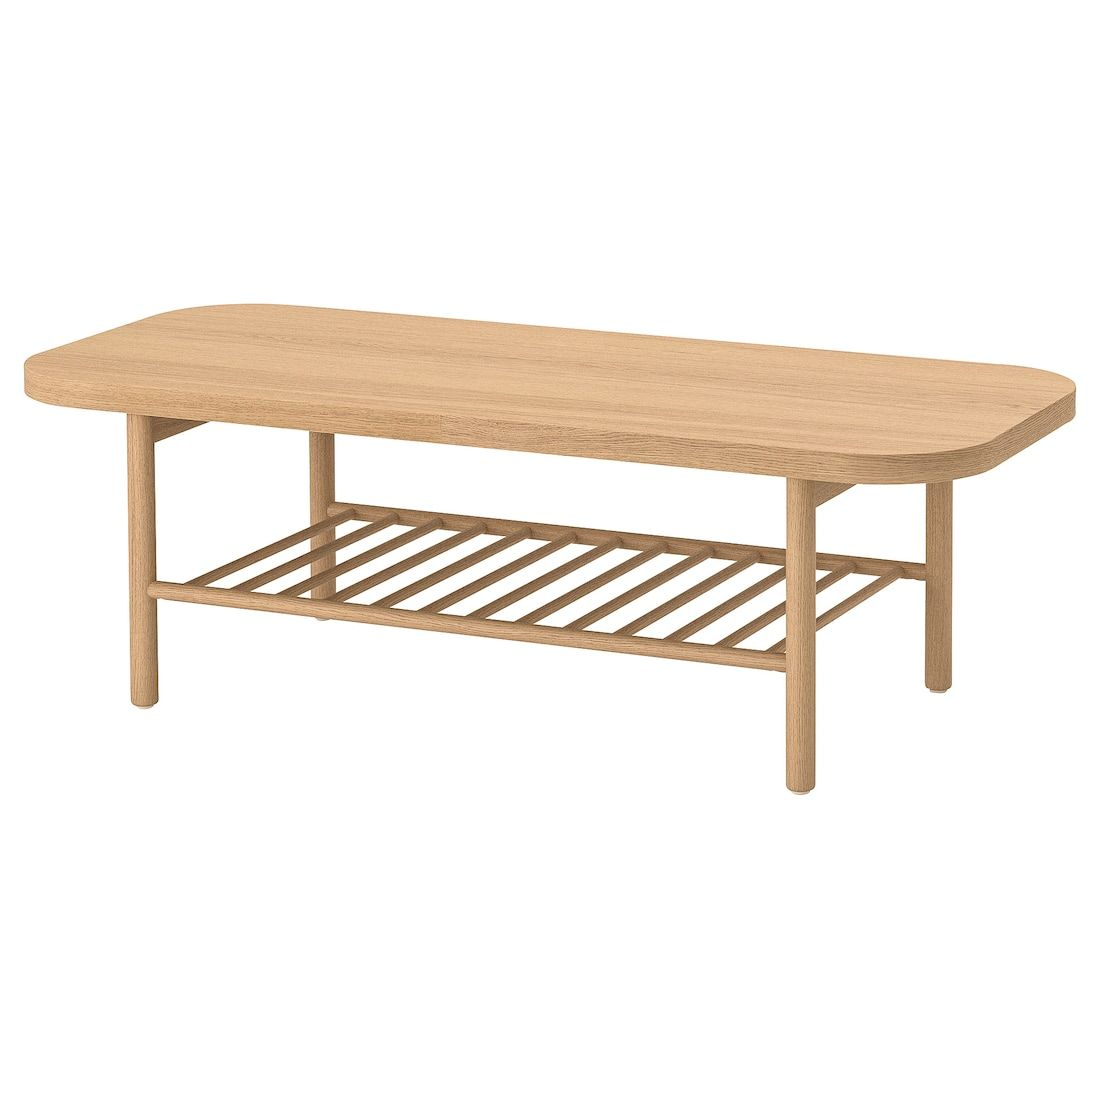 Listerby Coffee Table White Stained Oak 55 1 8x23 5 8 Ikea White Oak Coffee Table Coffee Table Wood Coffee Table White [ 1100 x 1100 Pixel ]